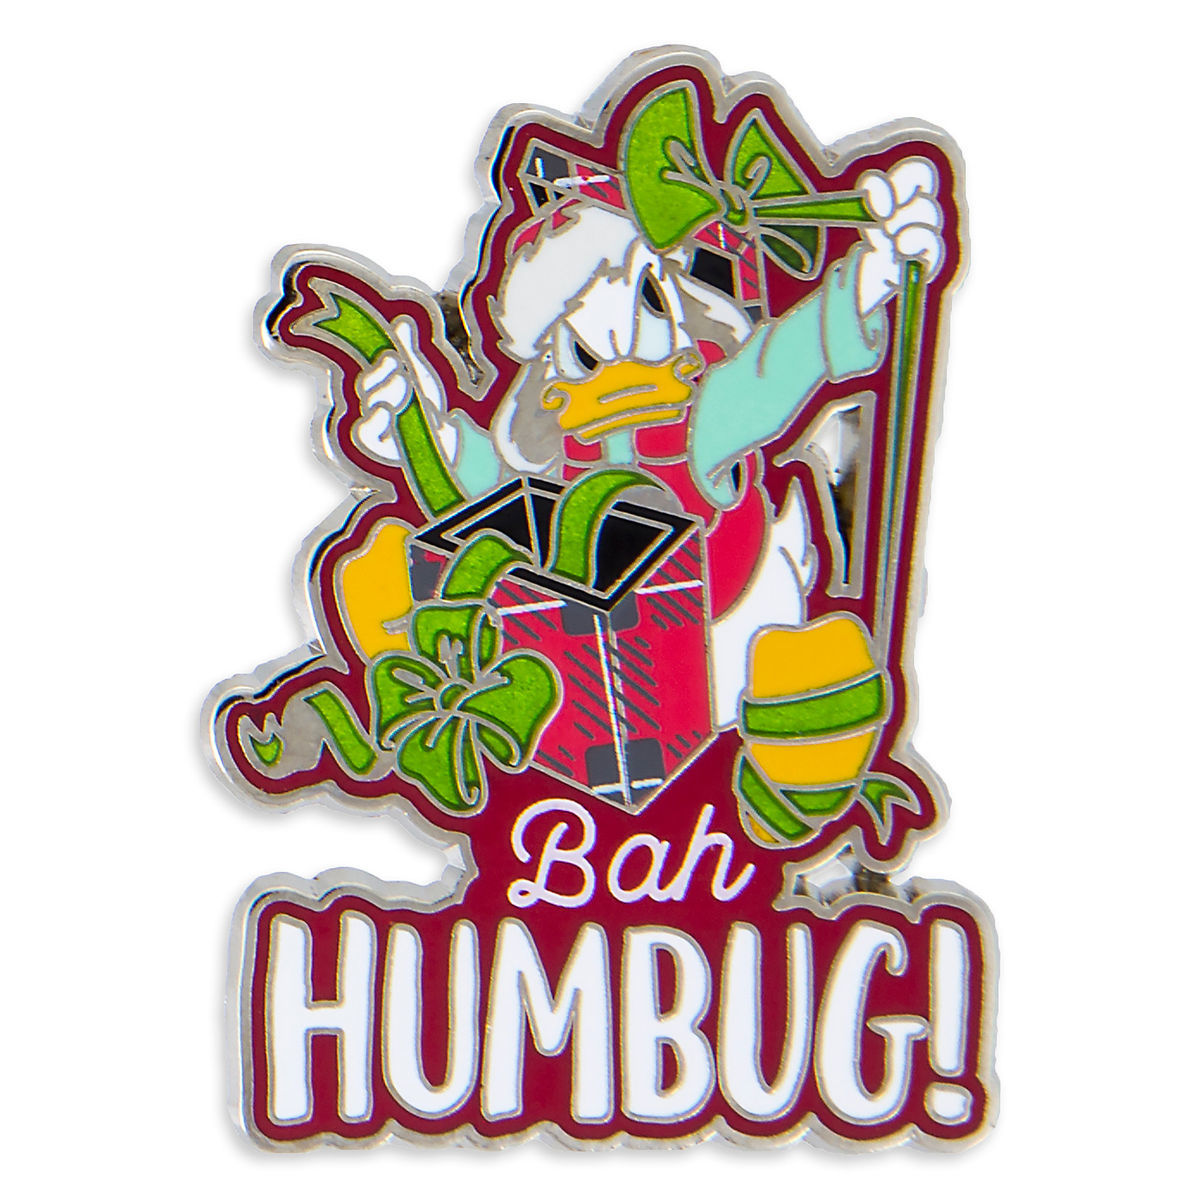 Disney Holiday Pin - Donald Duck Bah Humbug